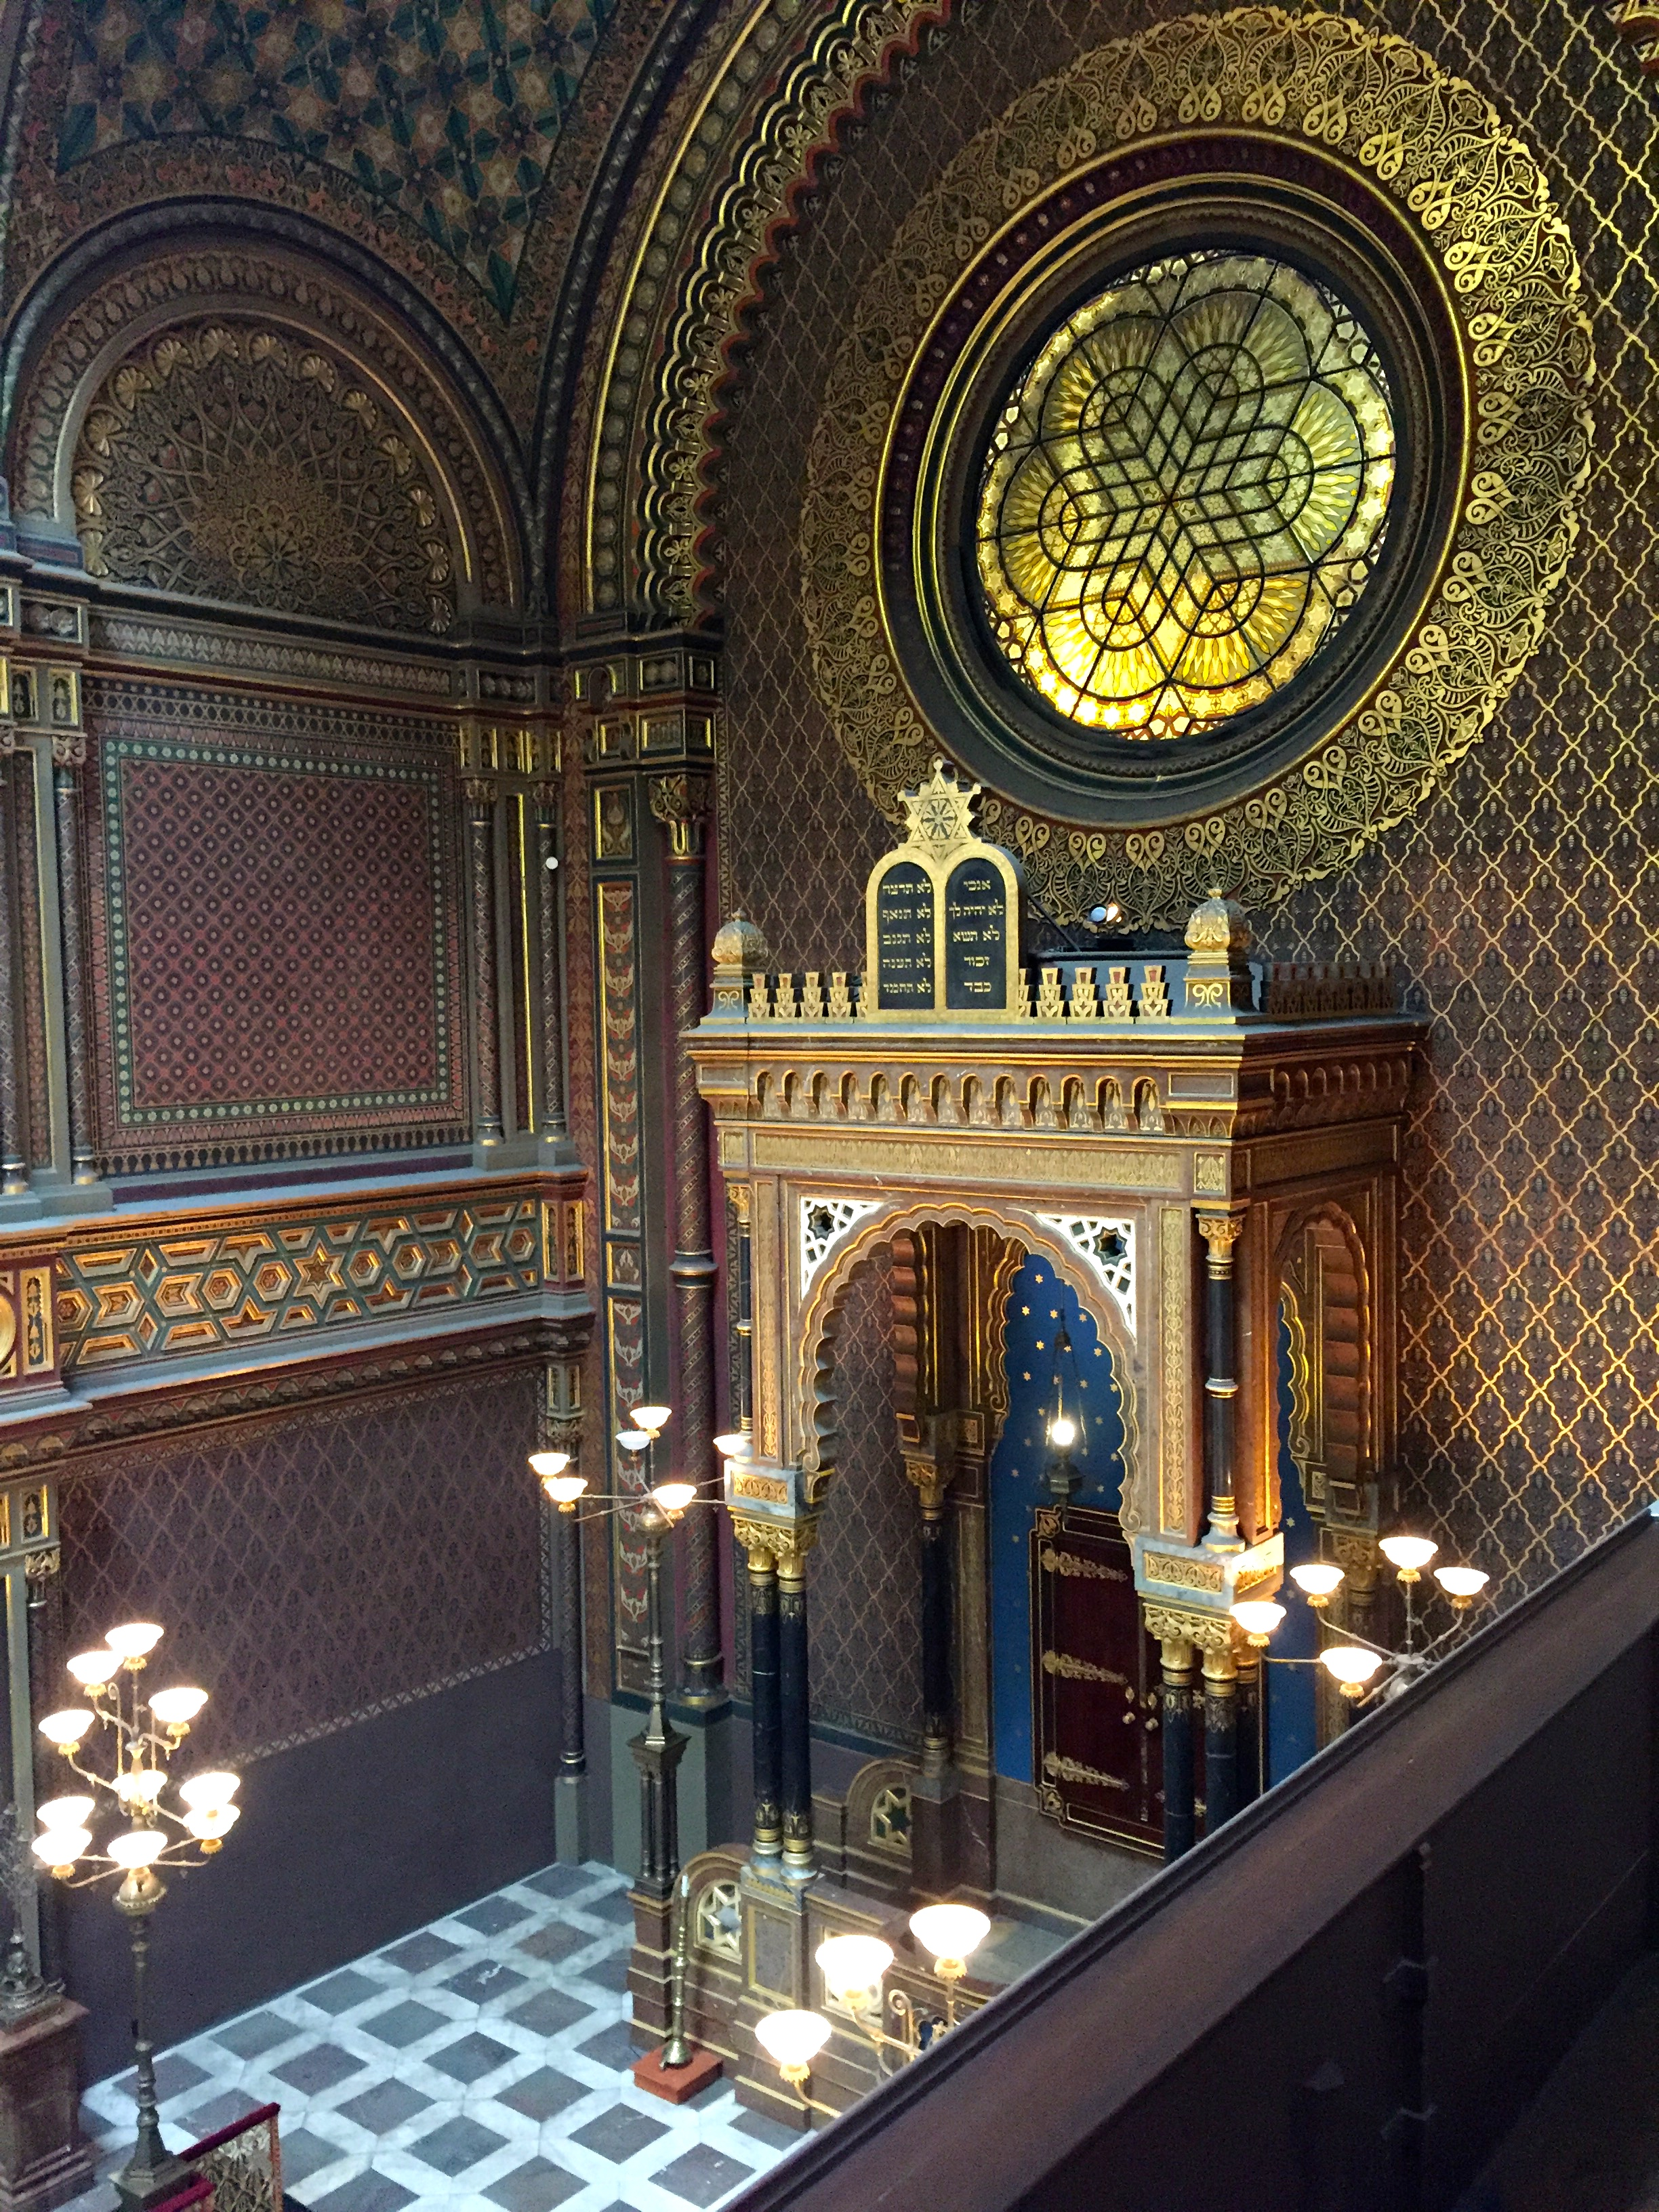 spanish-synagogue-jewish-quarter-prague-attractions